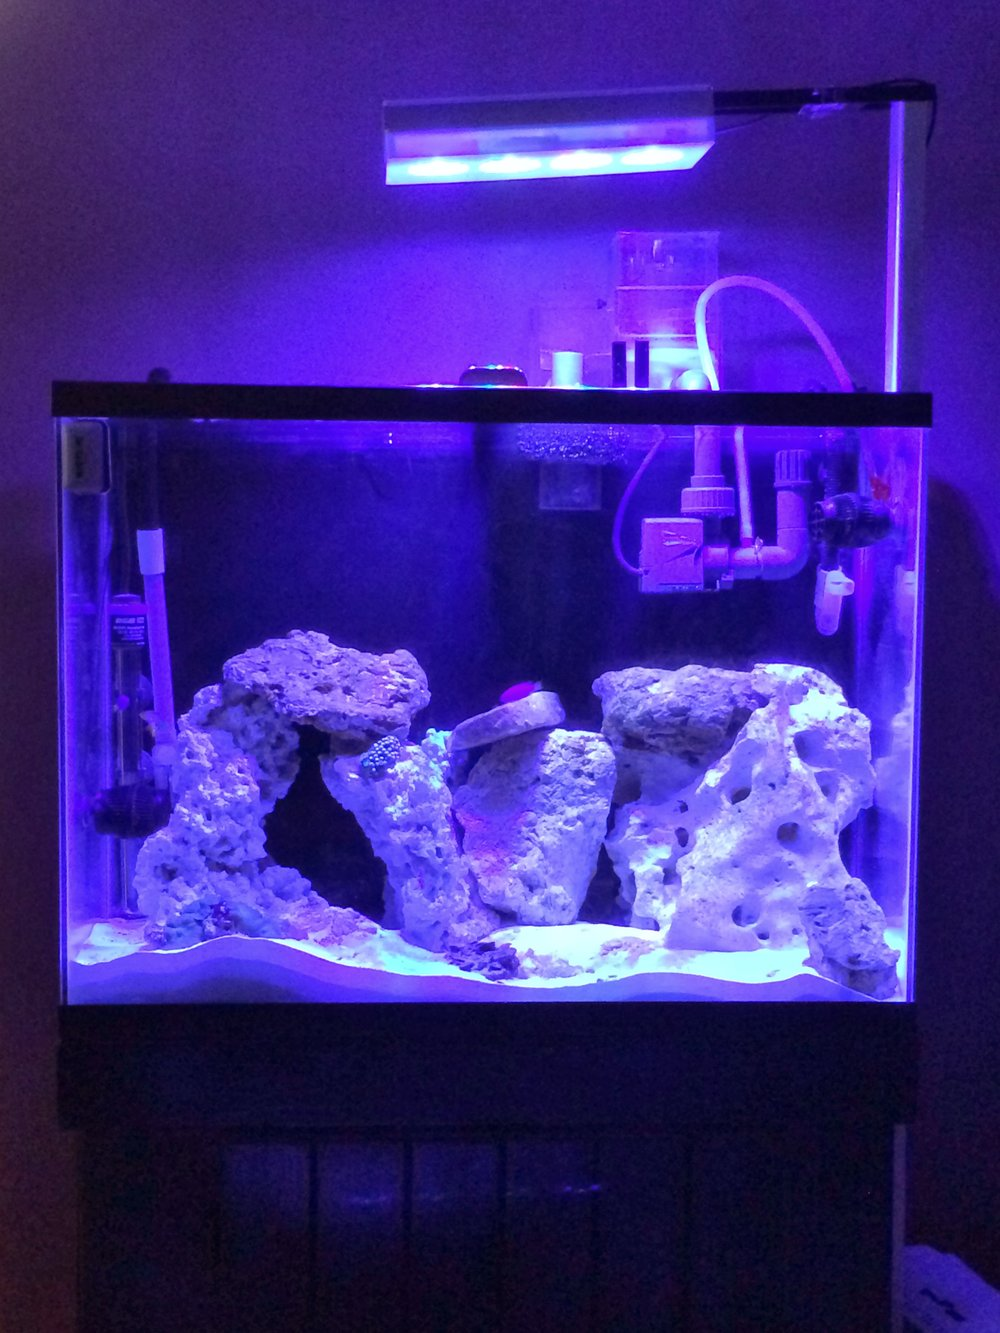 37 Gallon with AI Hydra Lights